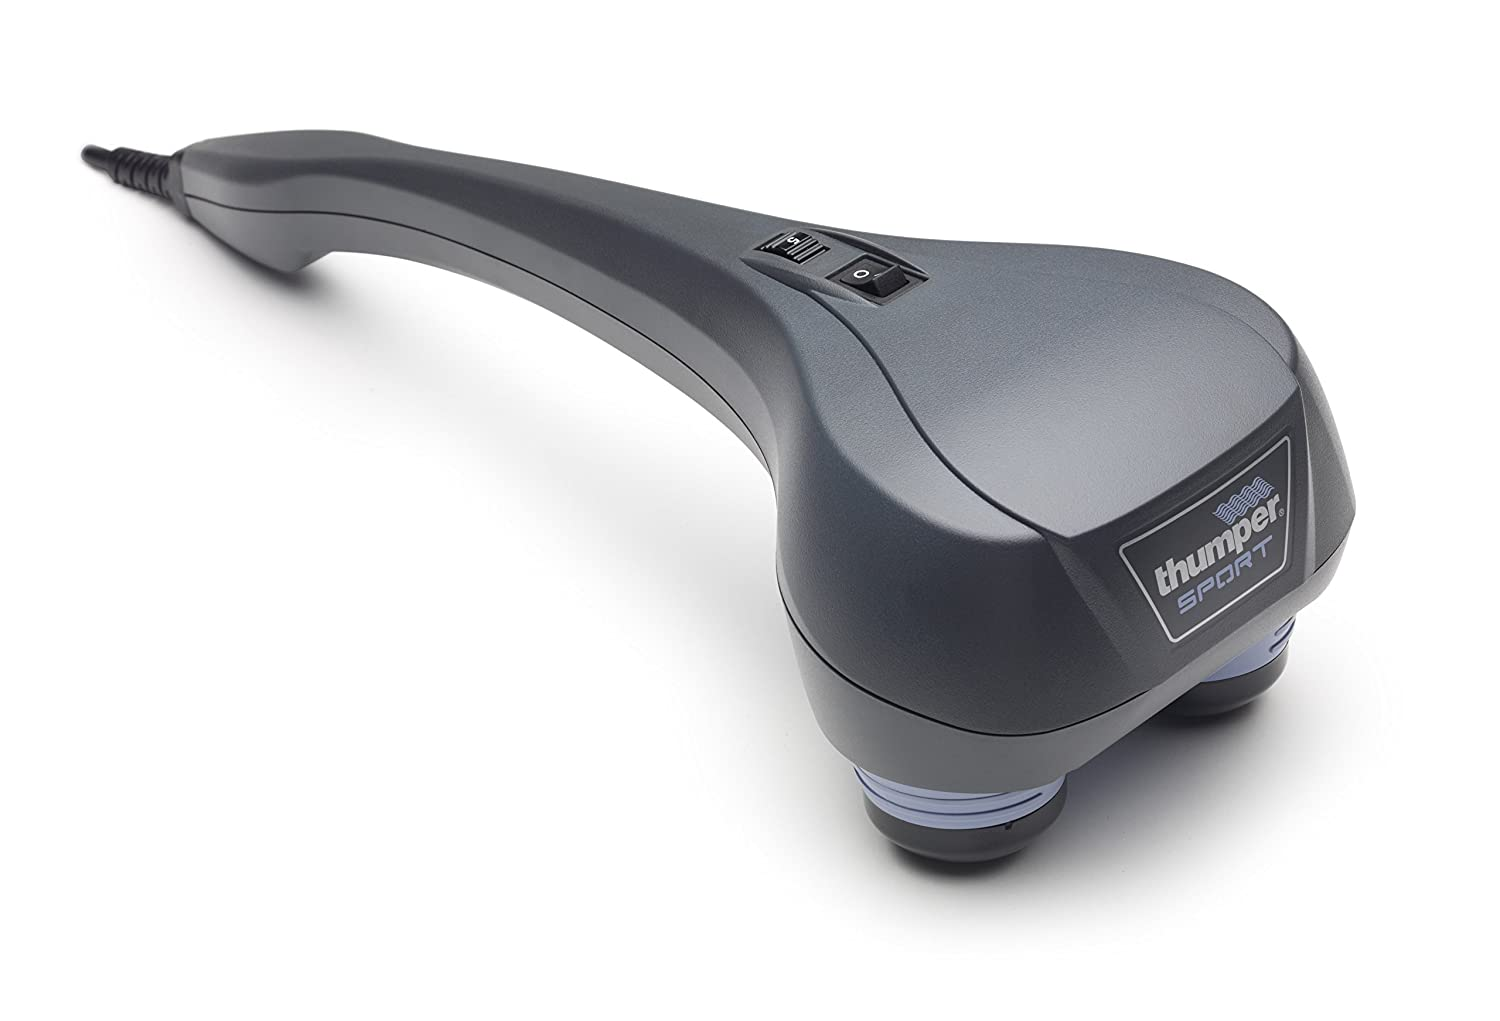 Best Handheld Massager By Thumper Sport Percussive